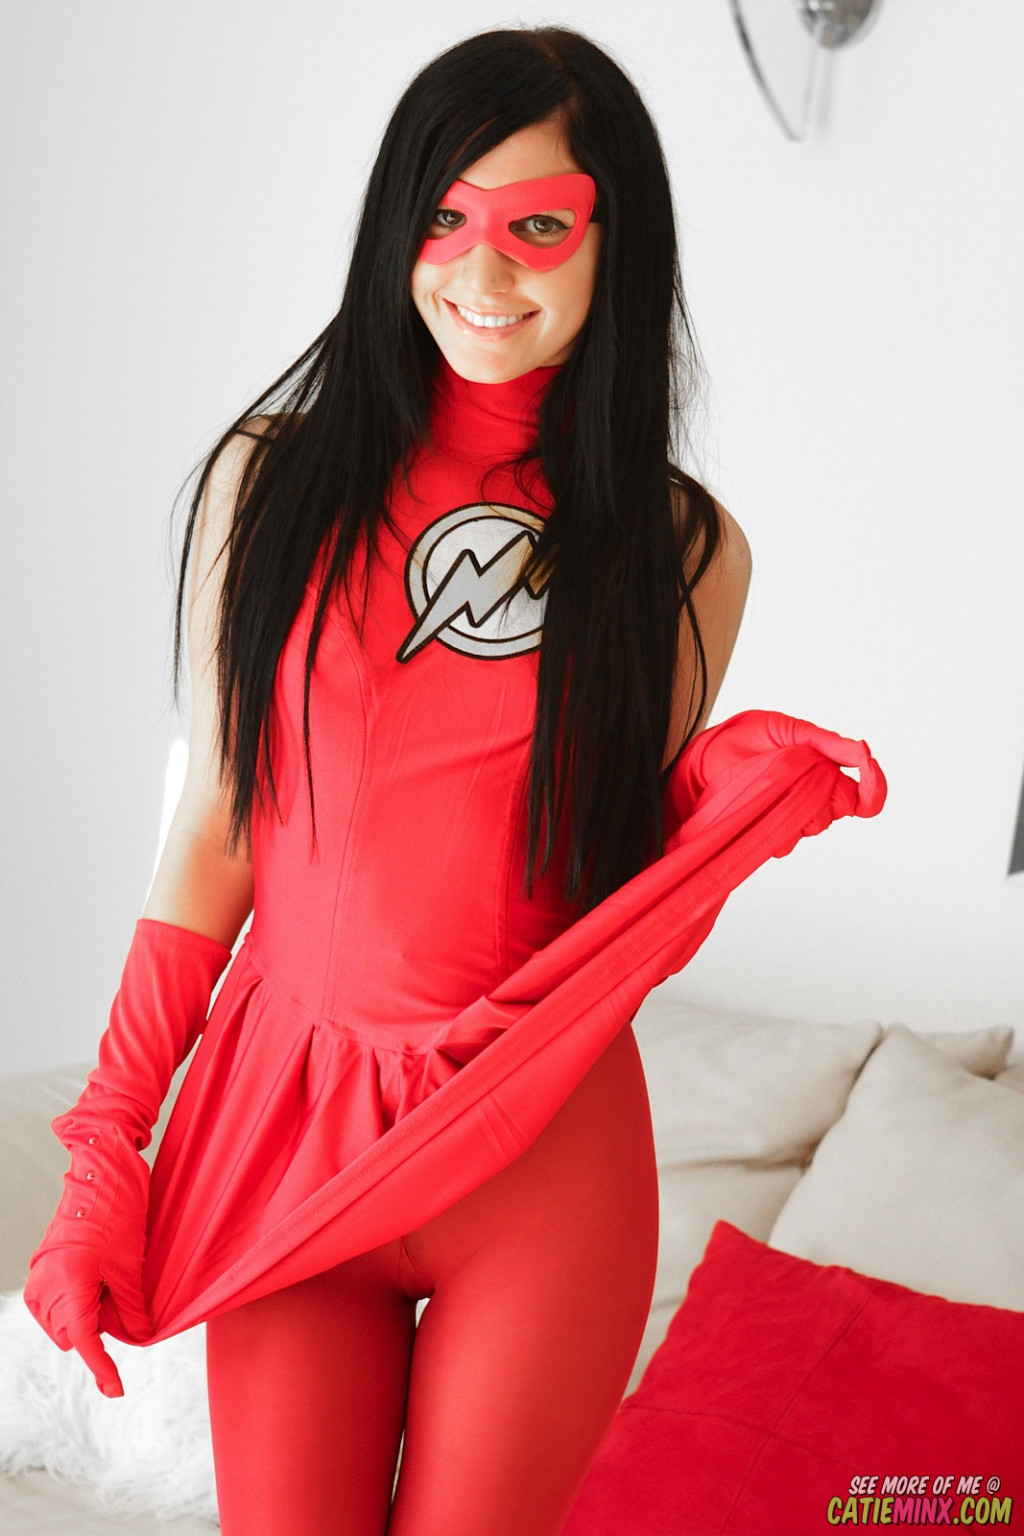 Catie minx young nerd covered up as the moment in cosplay